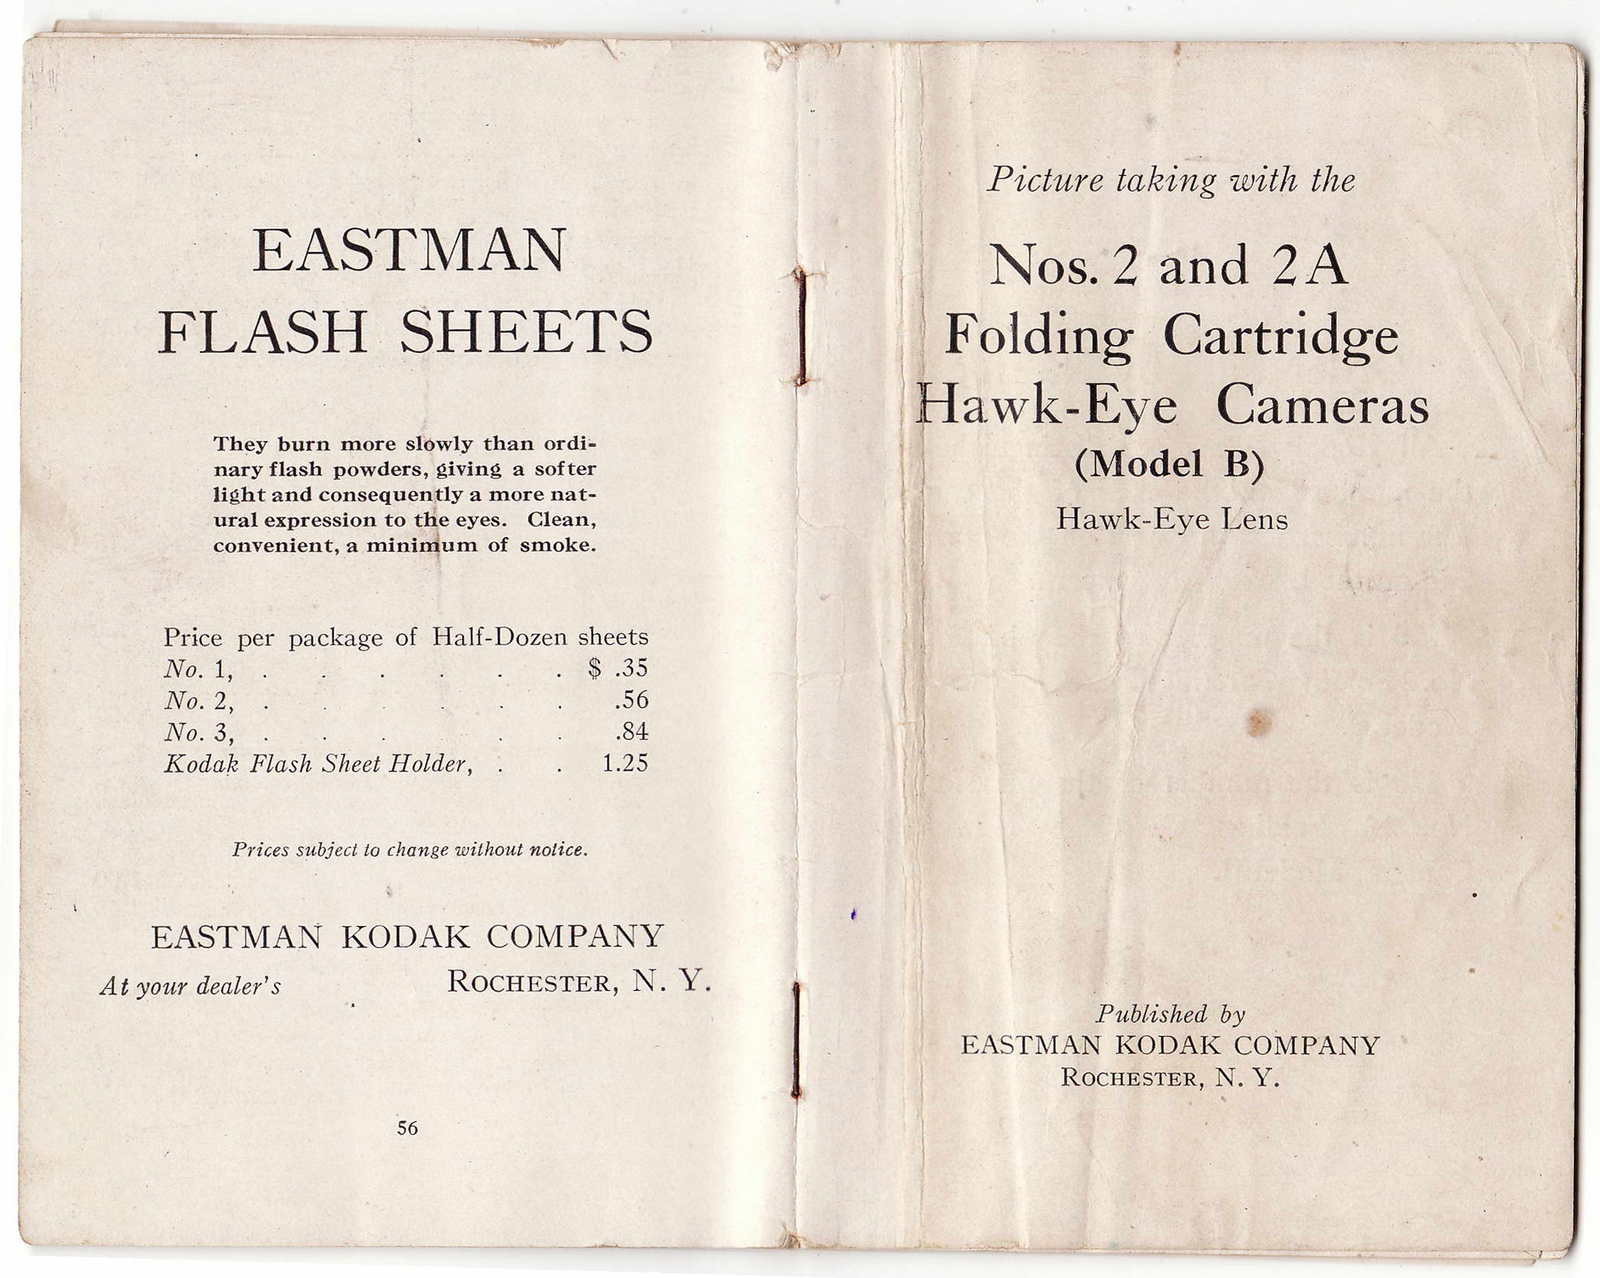 Kodak Hawk-Eye Cameras No. 2 and 2A Instruction Book in Great Shape Collectible - $23.00